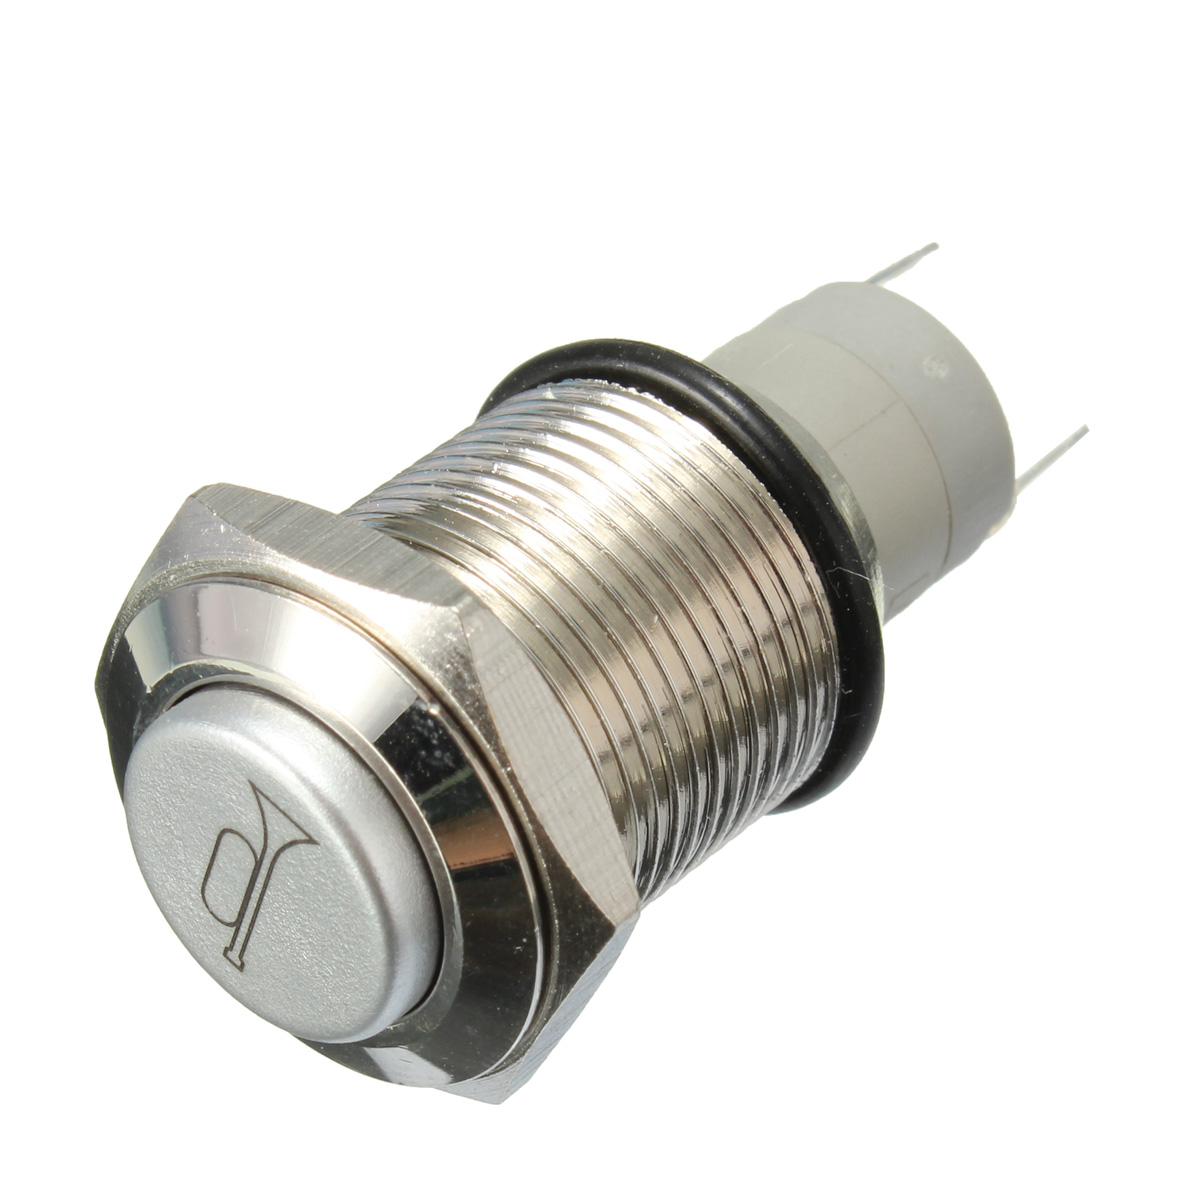 Engineering Essentials Relays And Contactors furthermore Electrical Schematic Symbols Names And Identifications together with Three Phase Bldc Motor moreover Four Quadrant Operation Of Dc Motor additionally Torque Slip Characteristic Stability Analysis For Induction Motor. on dc motor operation